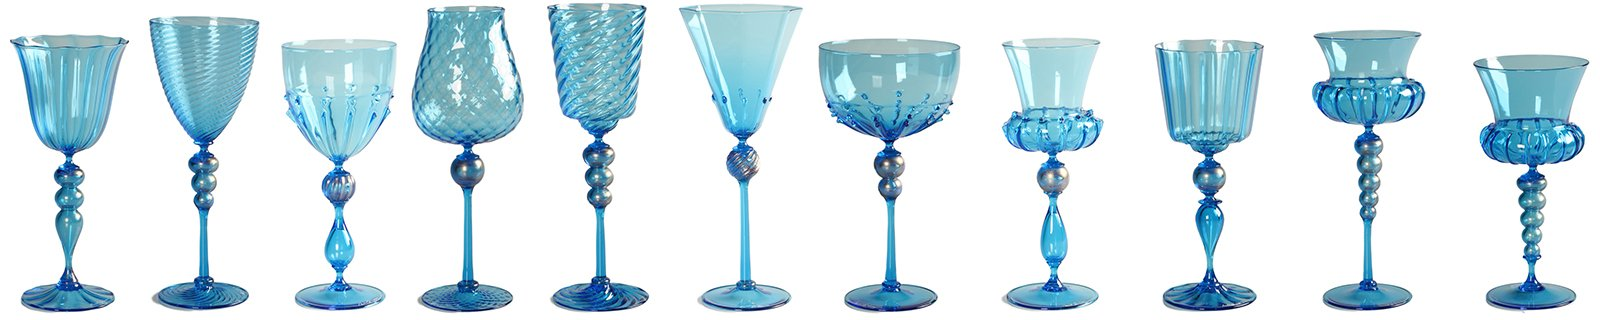 One-of-a-Kind Goblets by Michael Schunke